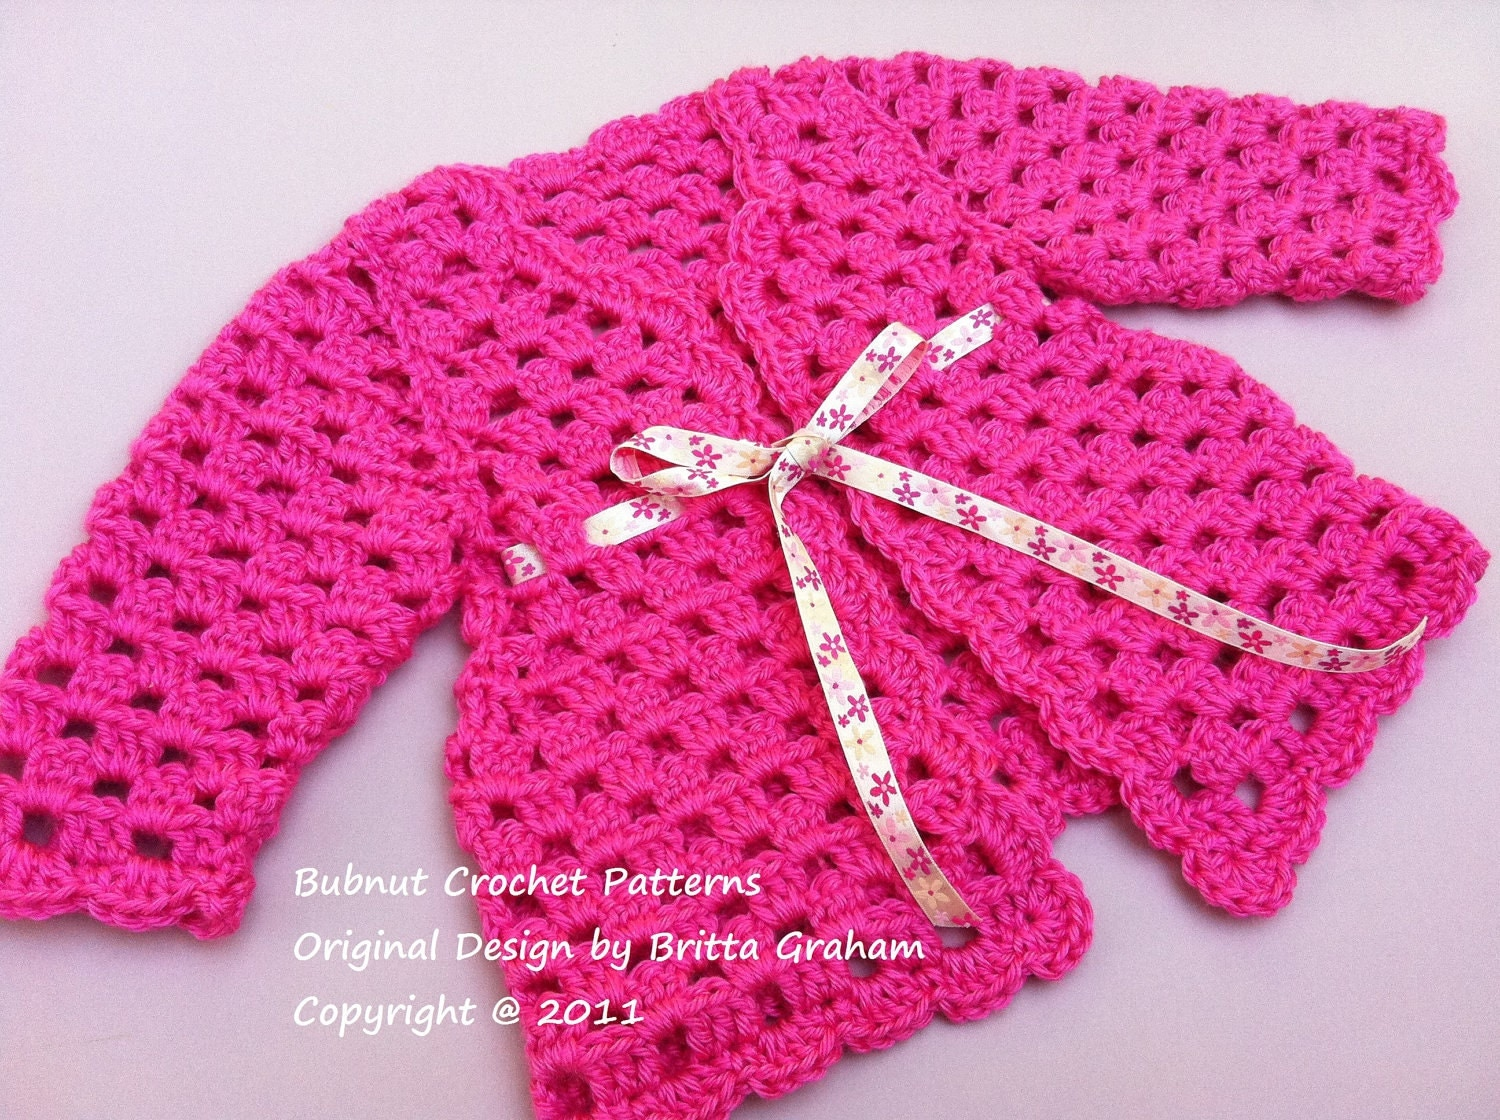 Crochet baby cardigan pattern sweater crochet pattern no905 zoom bankloansurffo Choice Image